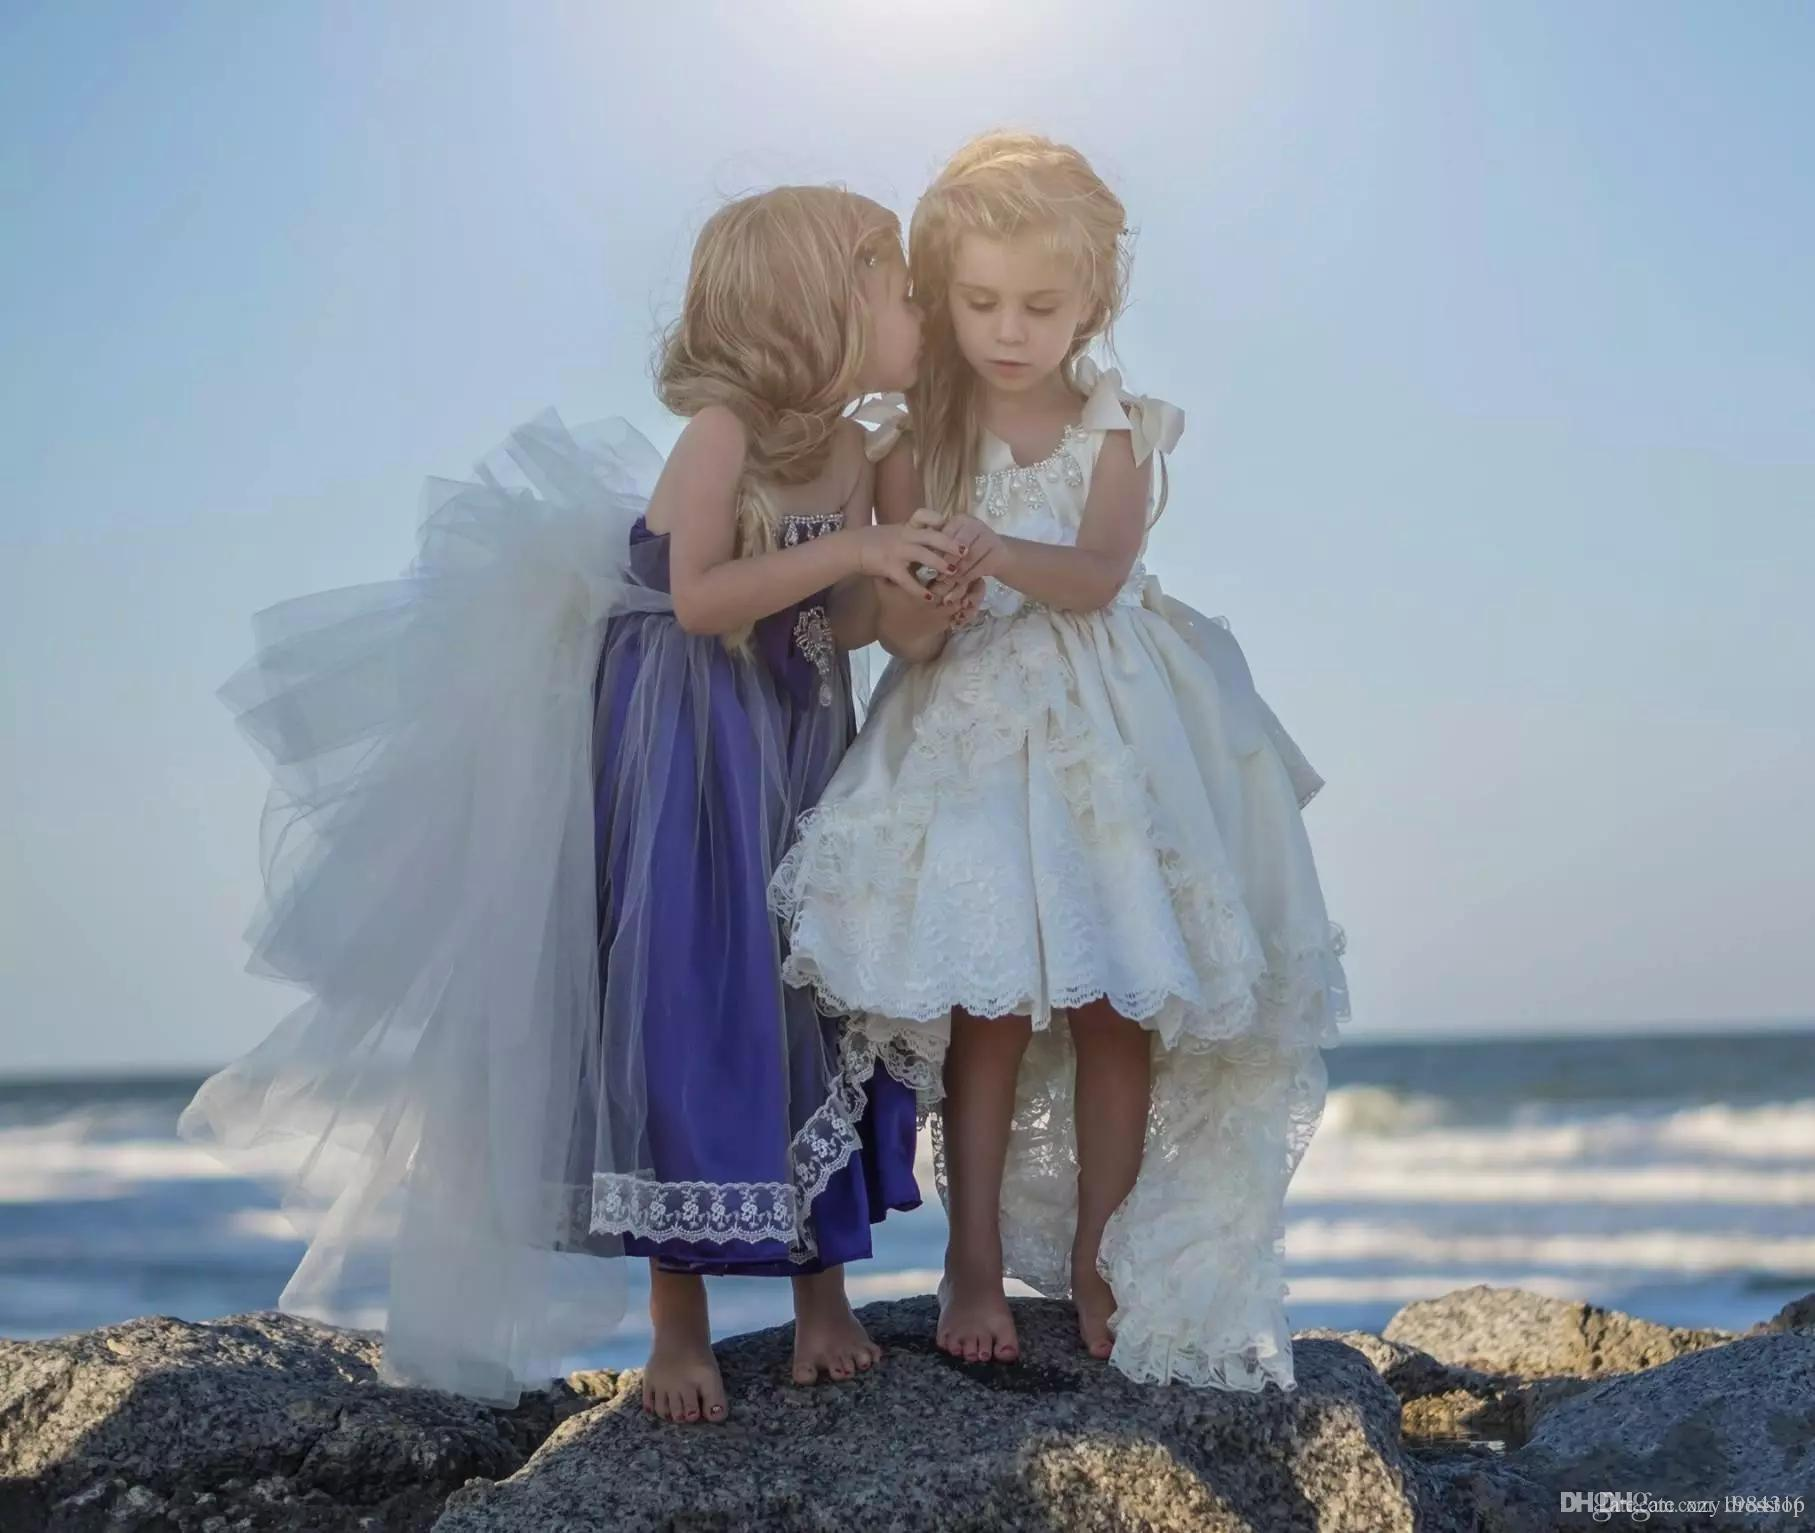 Satin Lace Ivory Princess Pageant Dresses For Girls Ribbon Straps Beaded Crystals Flower Girls Dress High Low Boho Gown